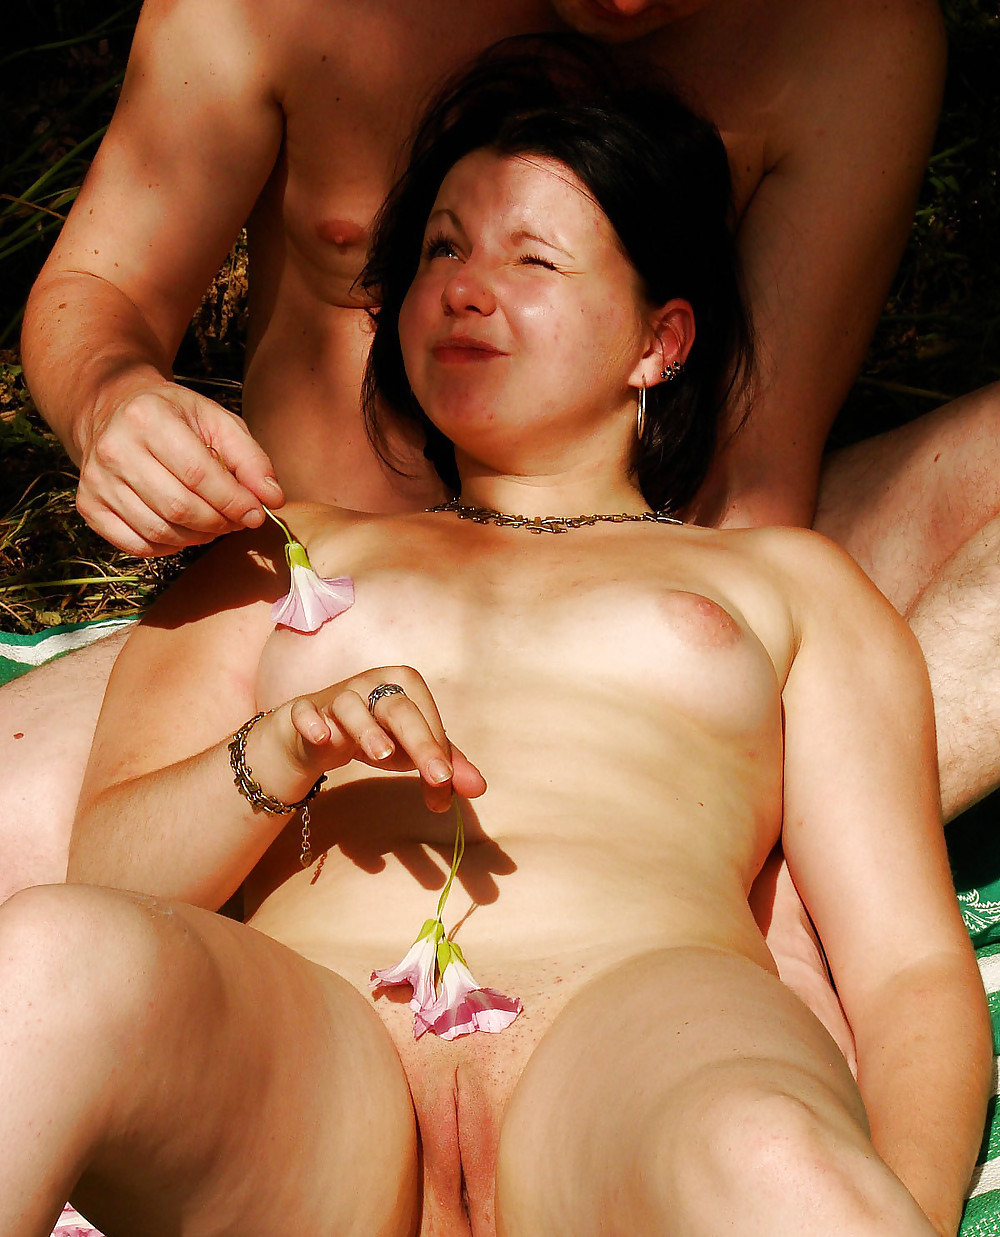 Interracial swingers outdoor glamour